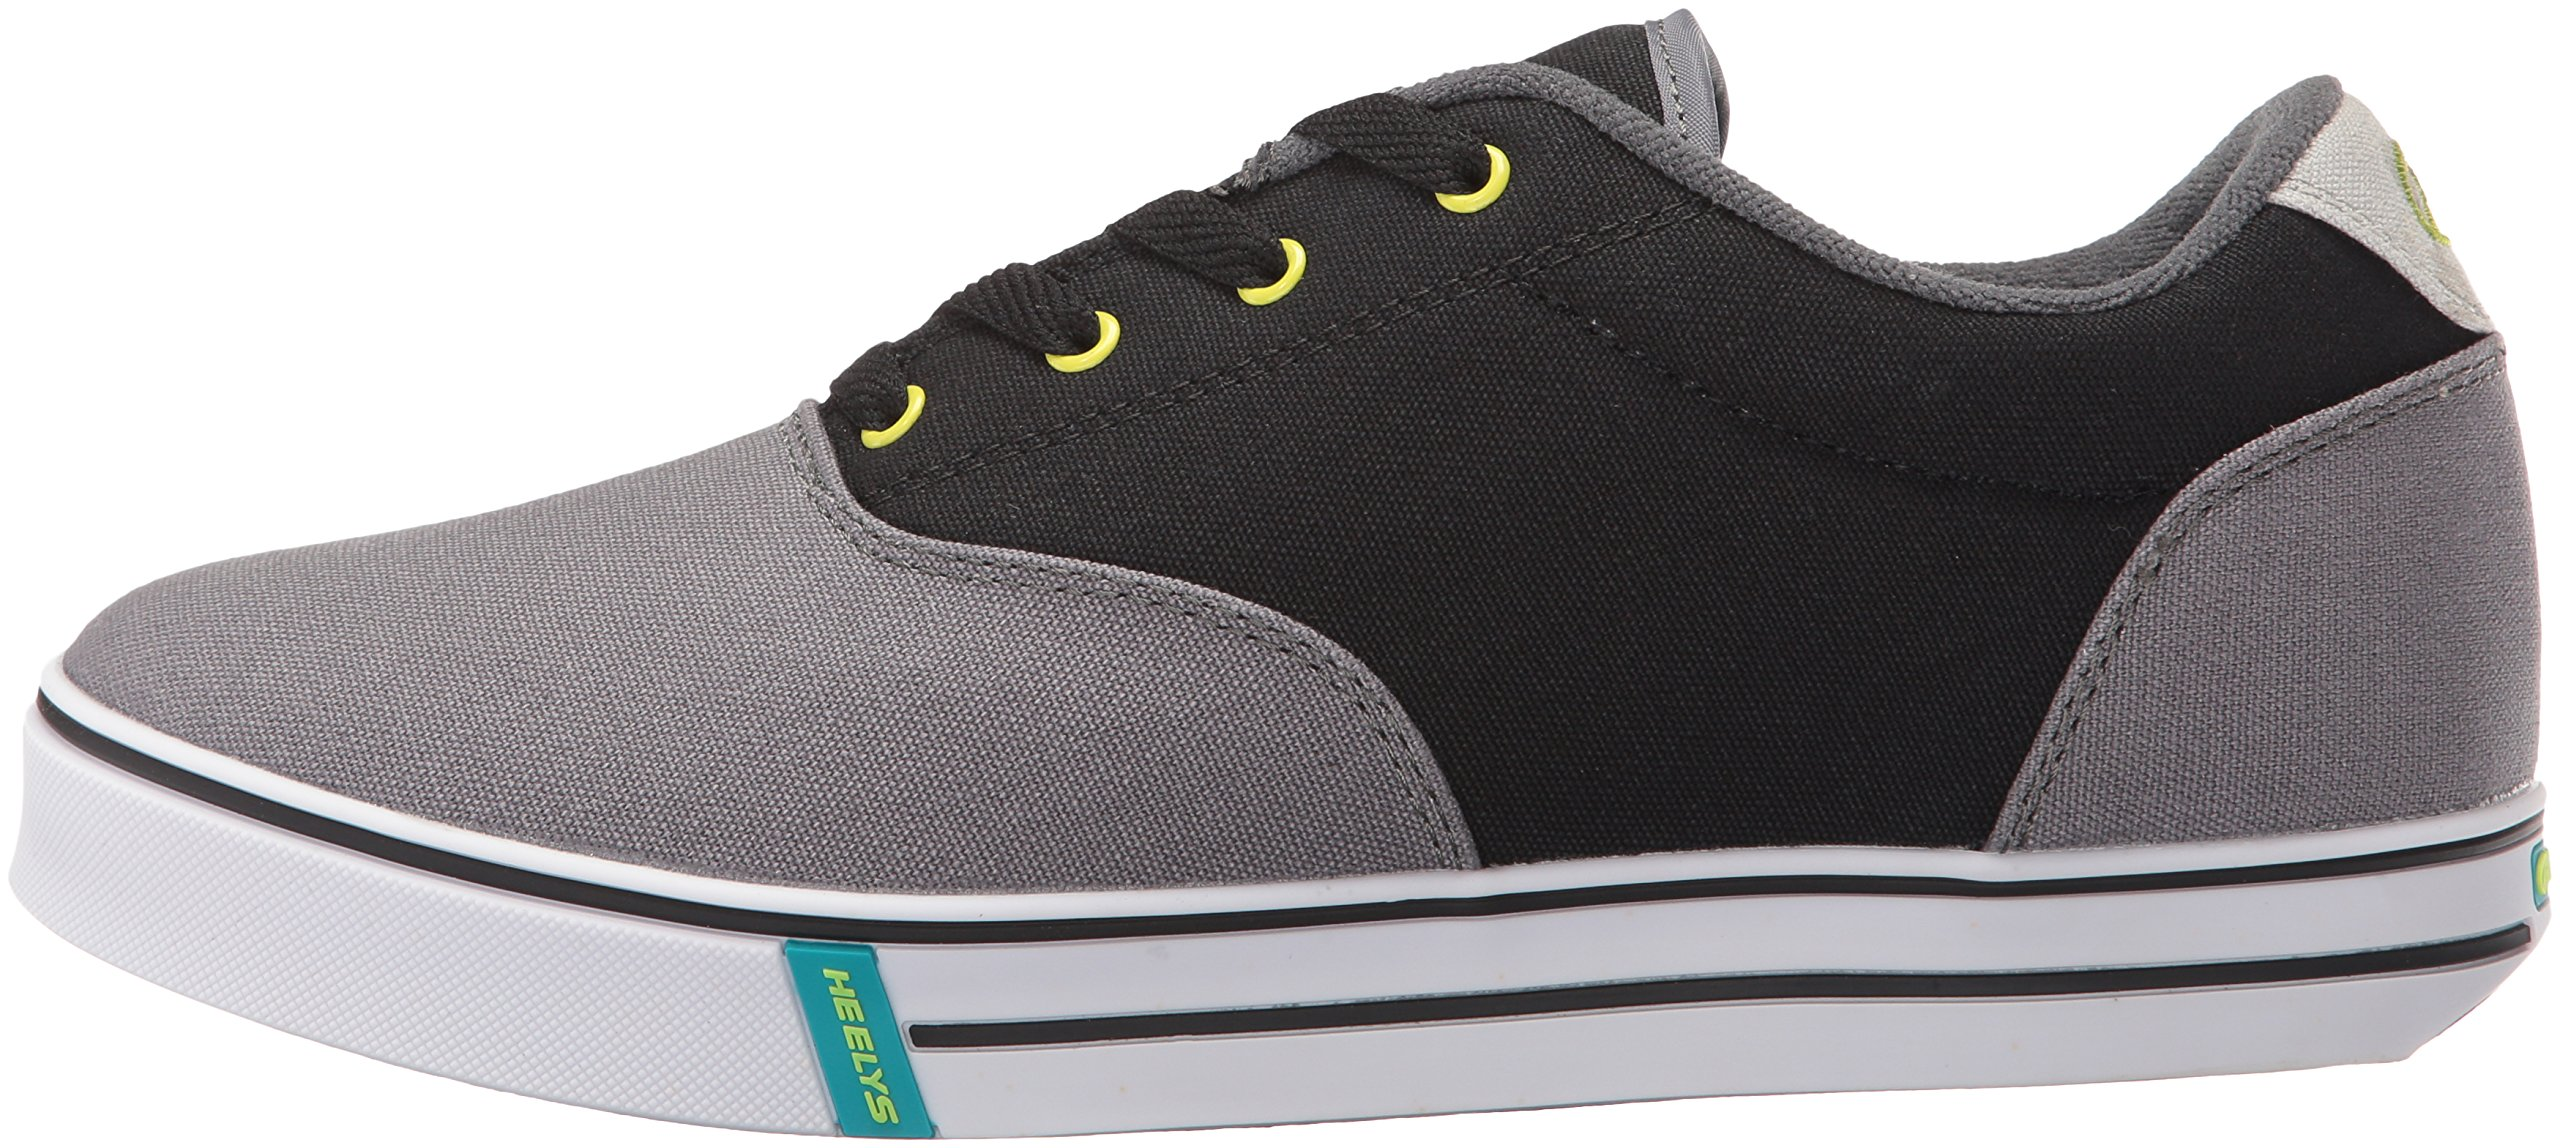 Heelys Men's Launch Fashion Sneaker Charcoal/Black/Lime 10 M US by Heelys (Image #5)